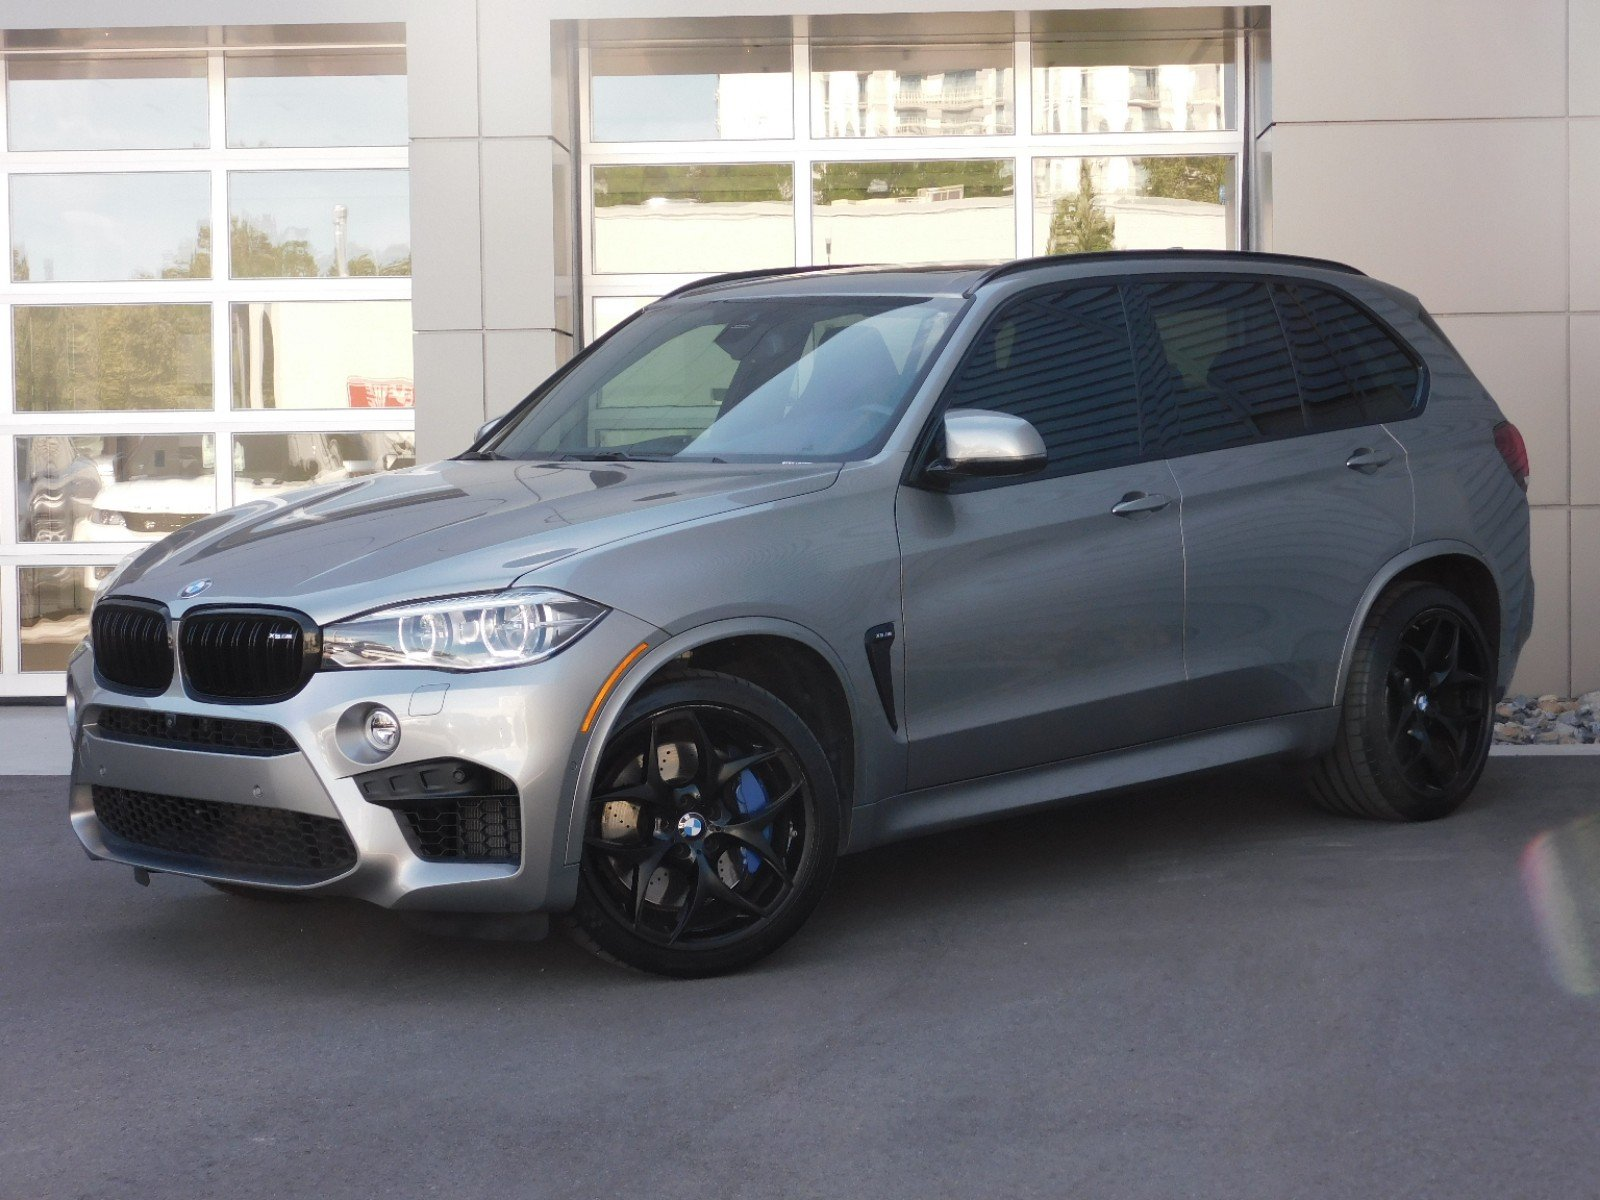 Pre-Owned 2017 BMW X5 M WAGON 4 DOOR